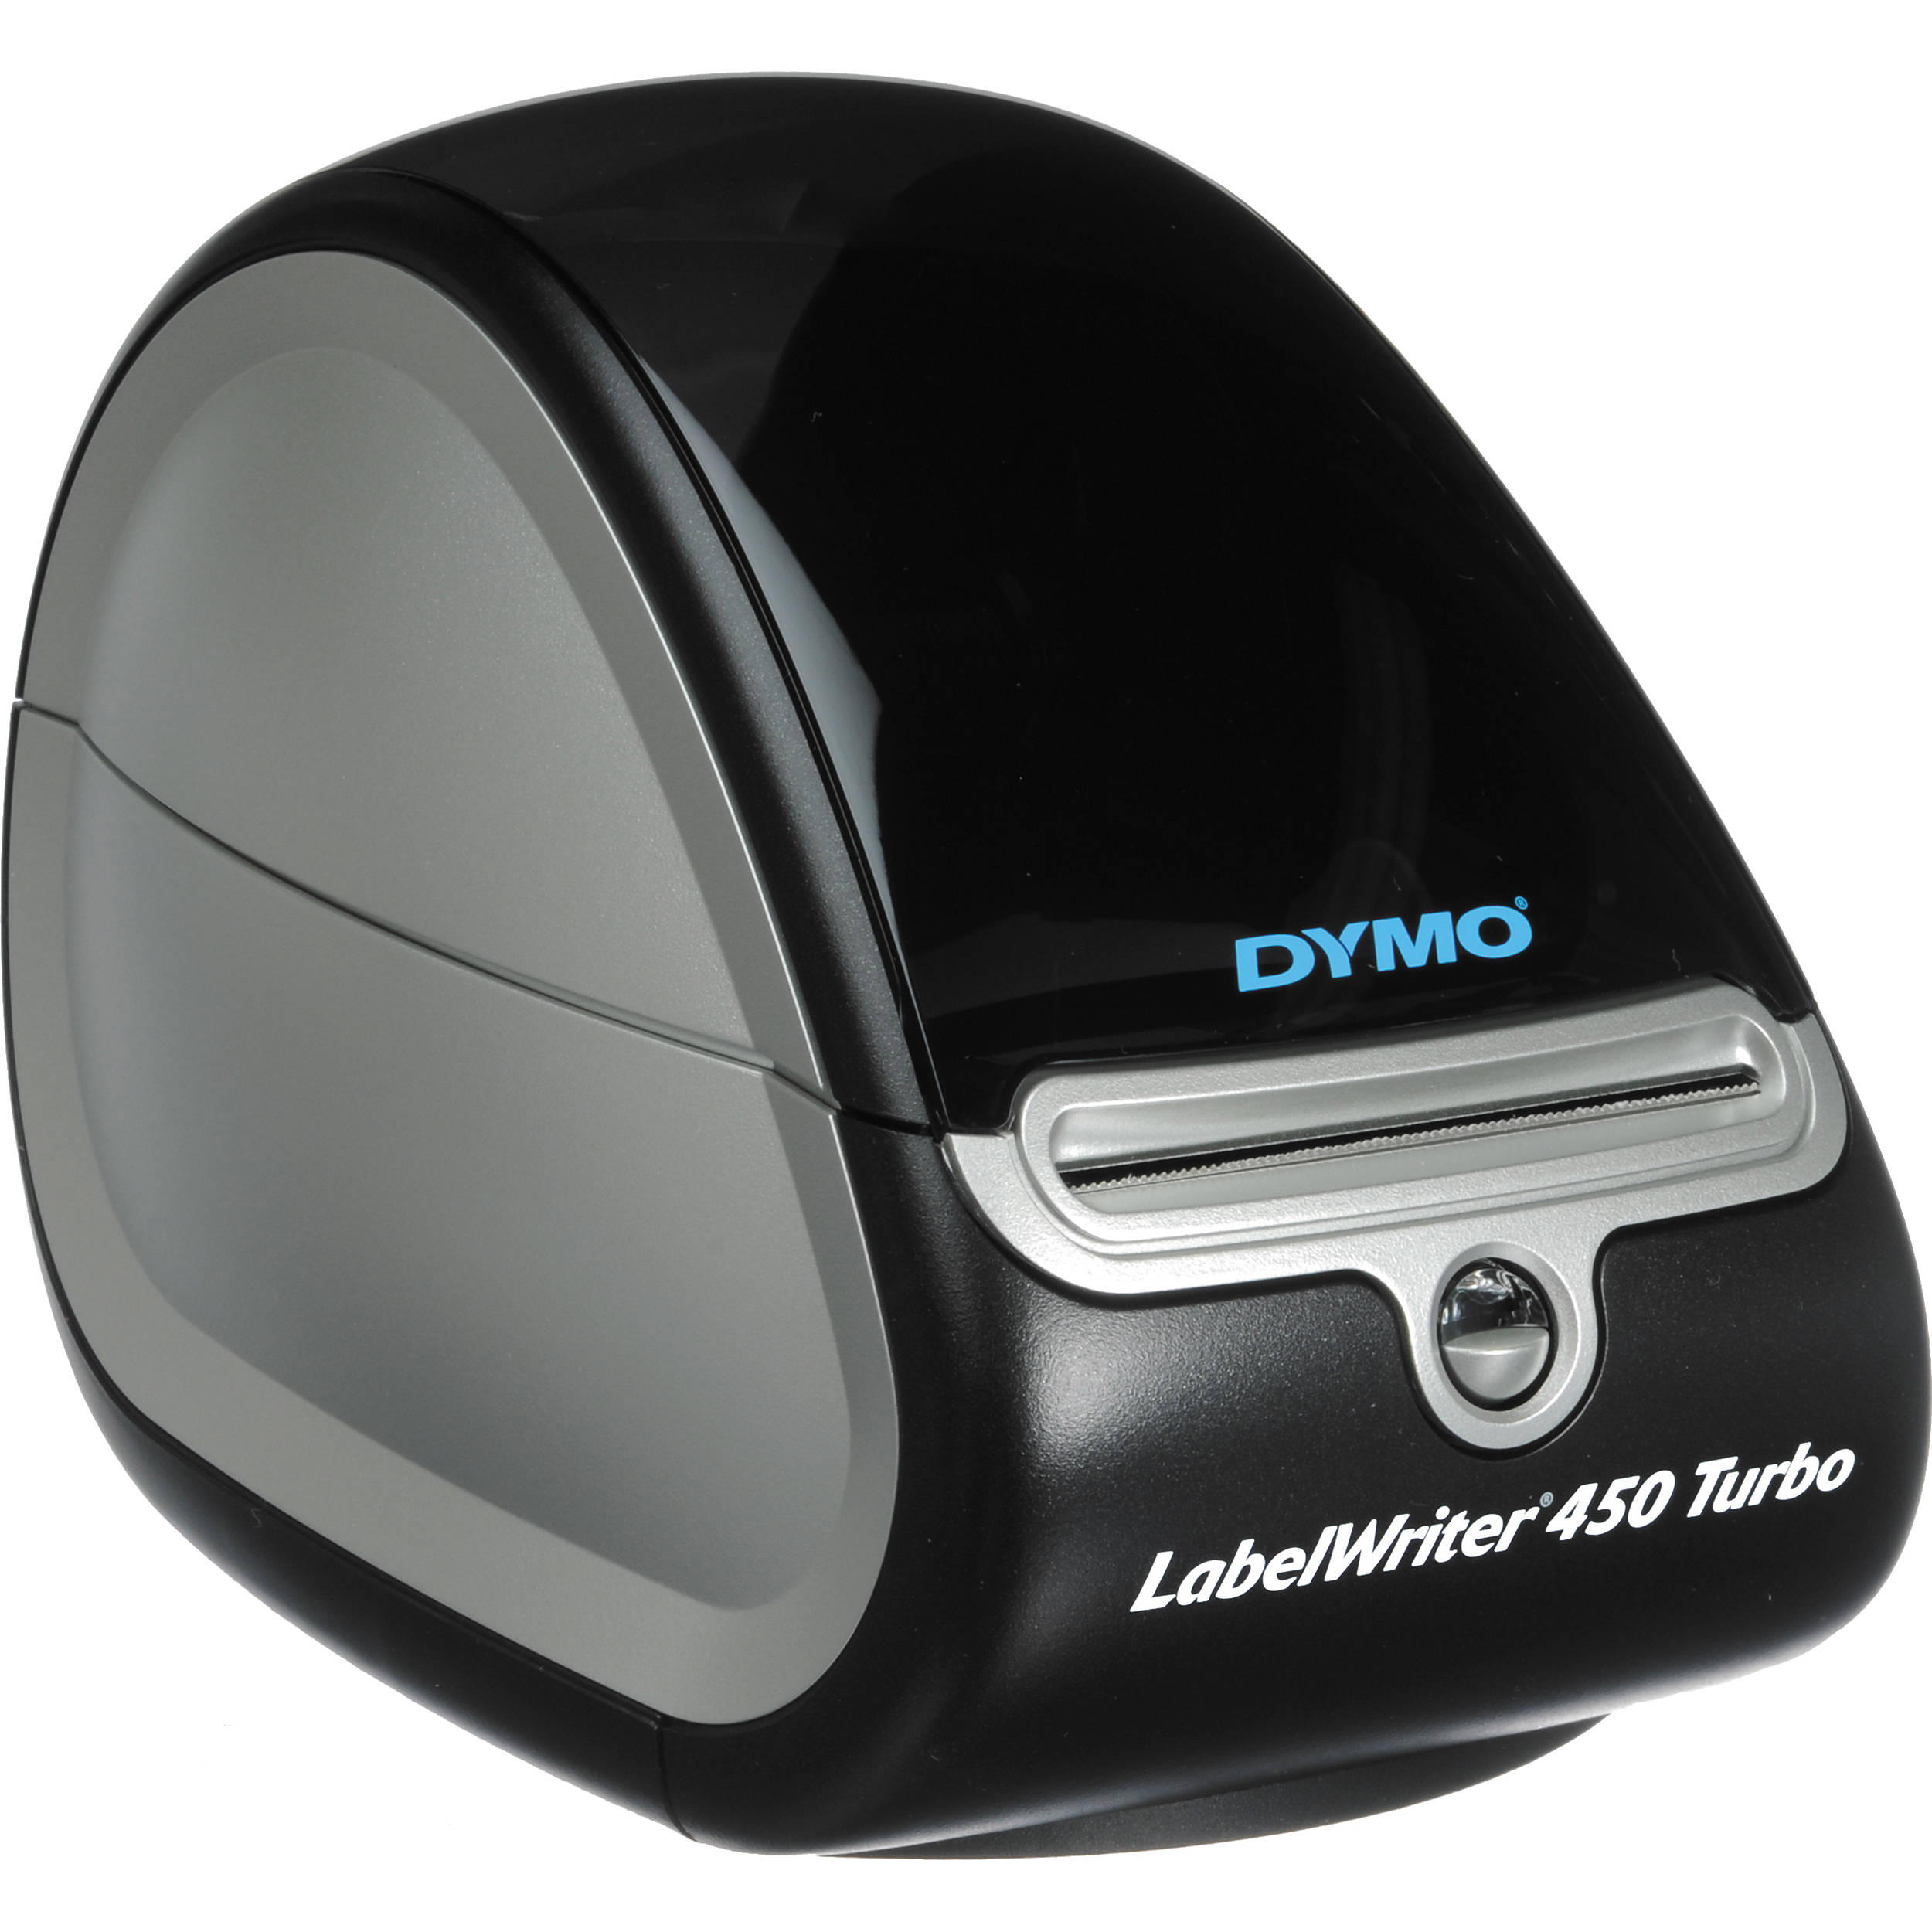 Dymo labelwriter 450 turbo usb label printer 1752265 bh photo for Dymo labelwriter 450 turbo labels